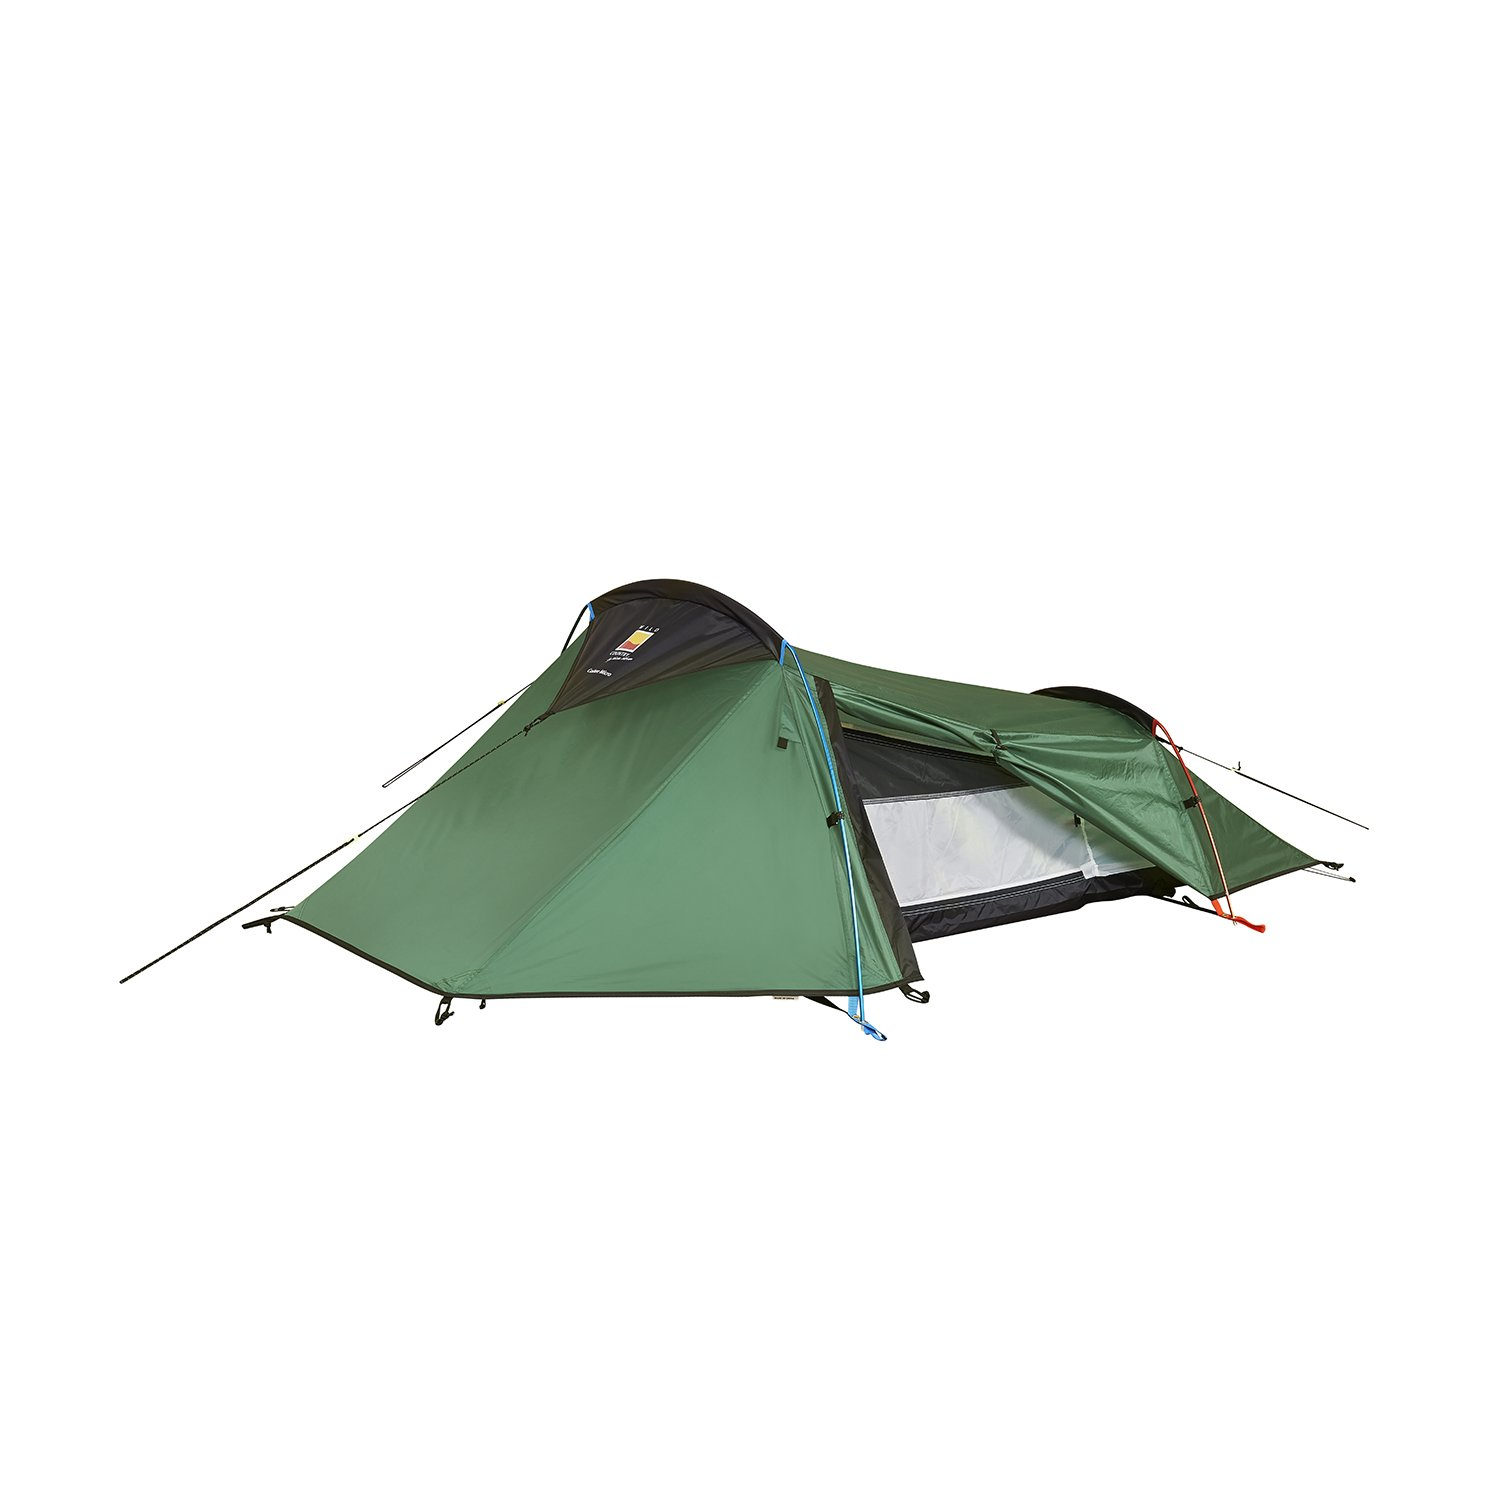 Coshee Micro Tent  sc 1 st  Terra Nova Equipment & Backpacking Tents from Terra Nova u0026 Wild Country - Terra Nova ...